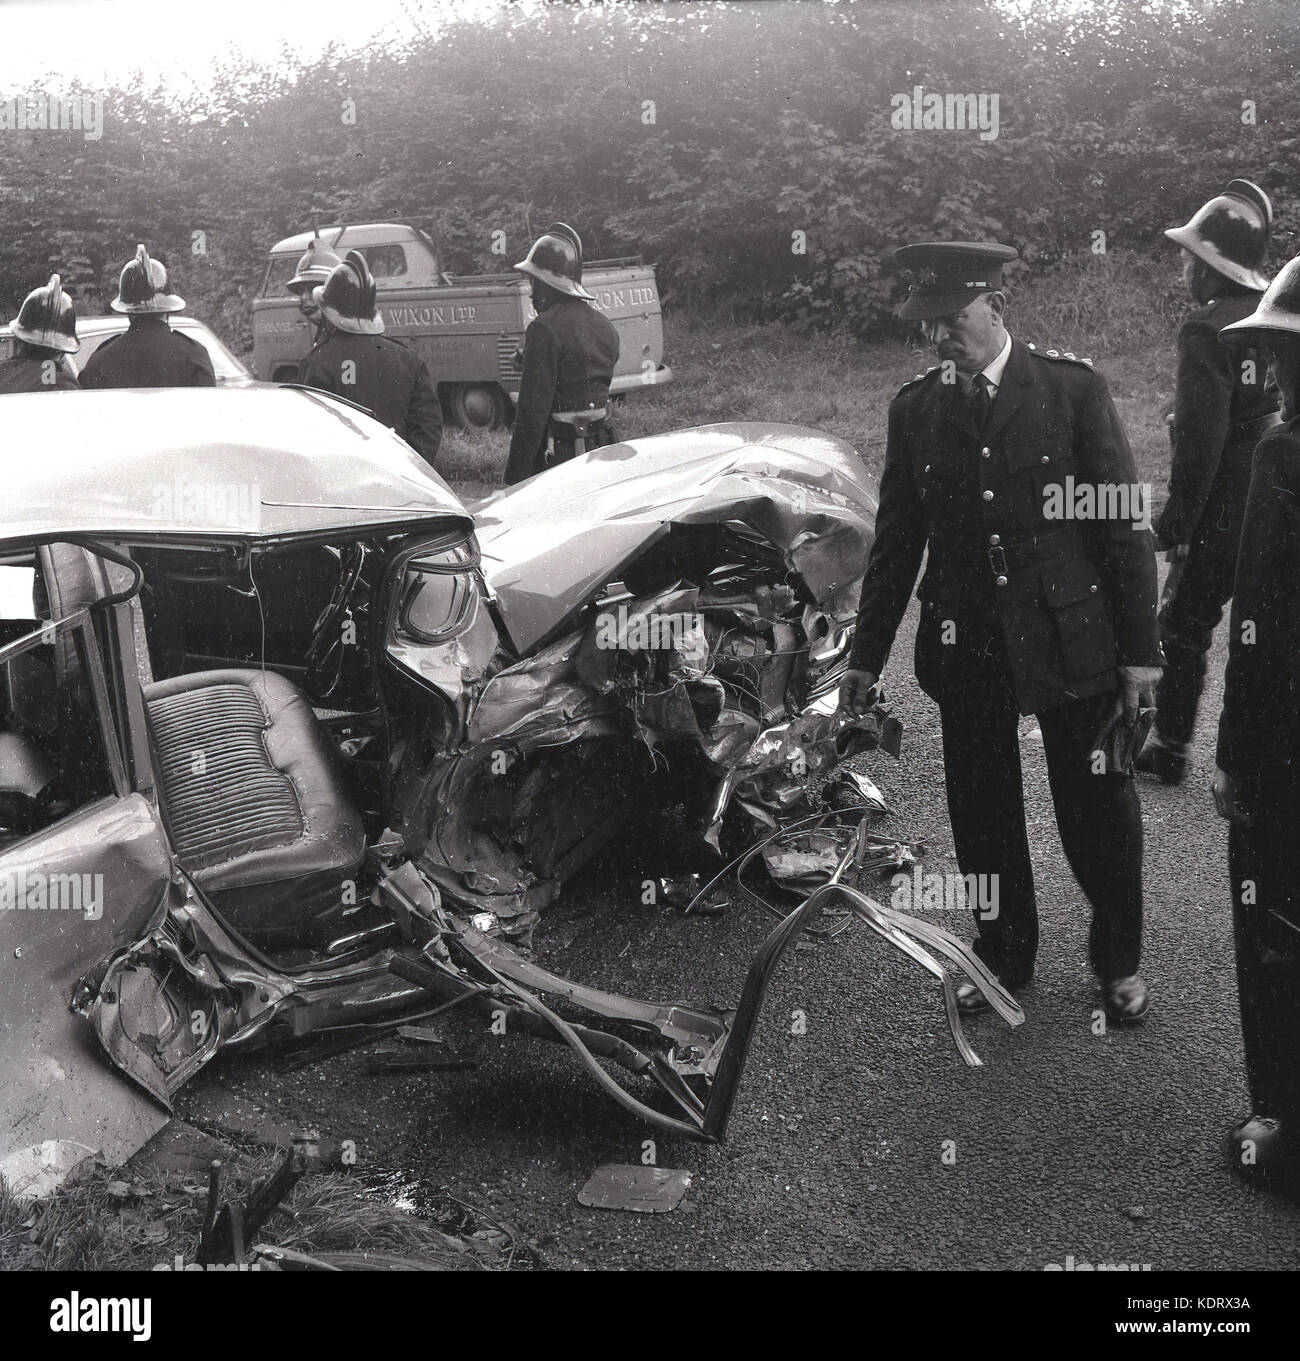 1960s, Buckinghamshire, UK, poiice and firemen with helmets at the scene of a rural road accident and a severely - Stock Image